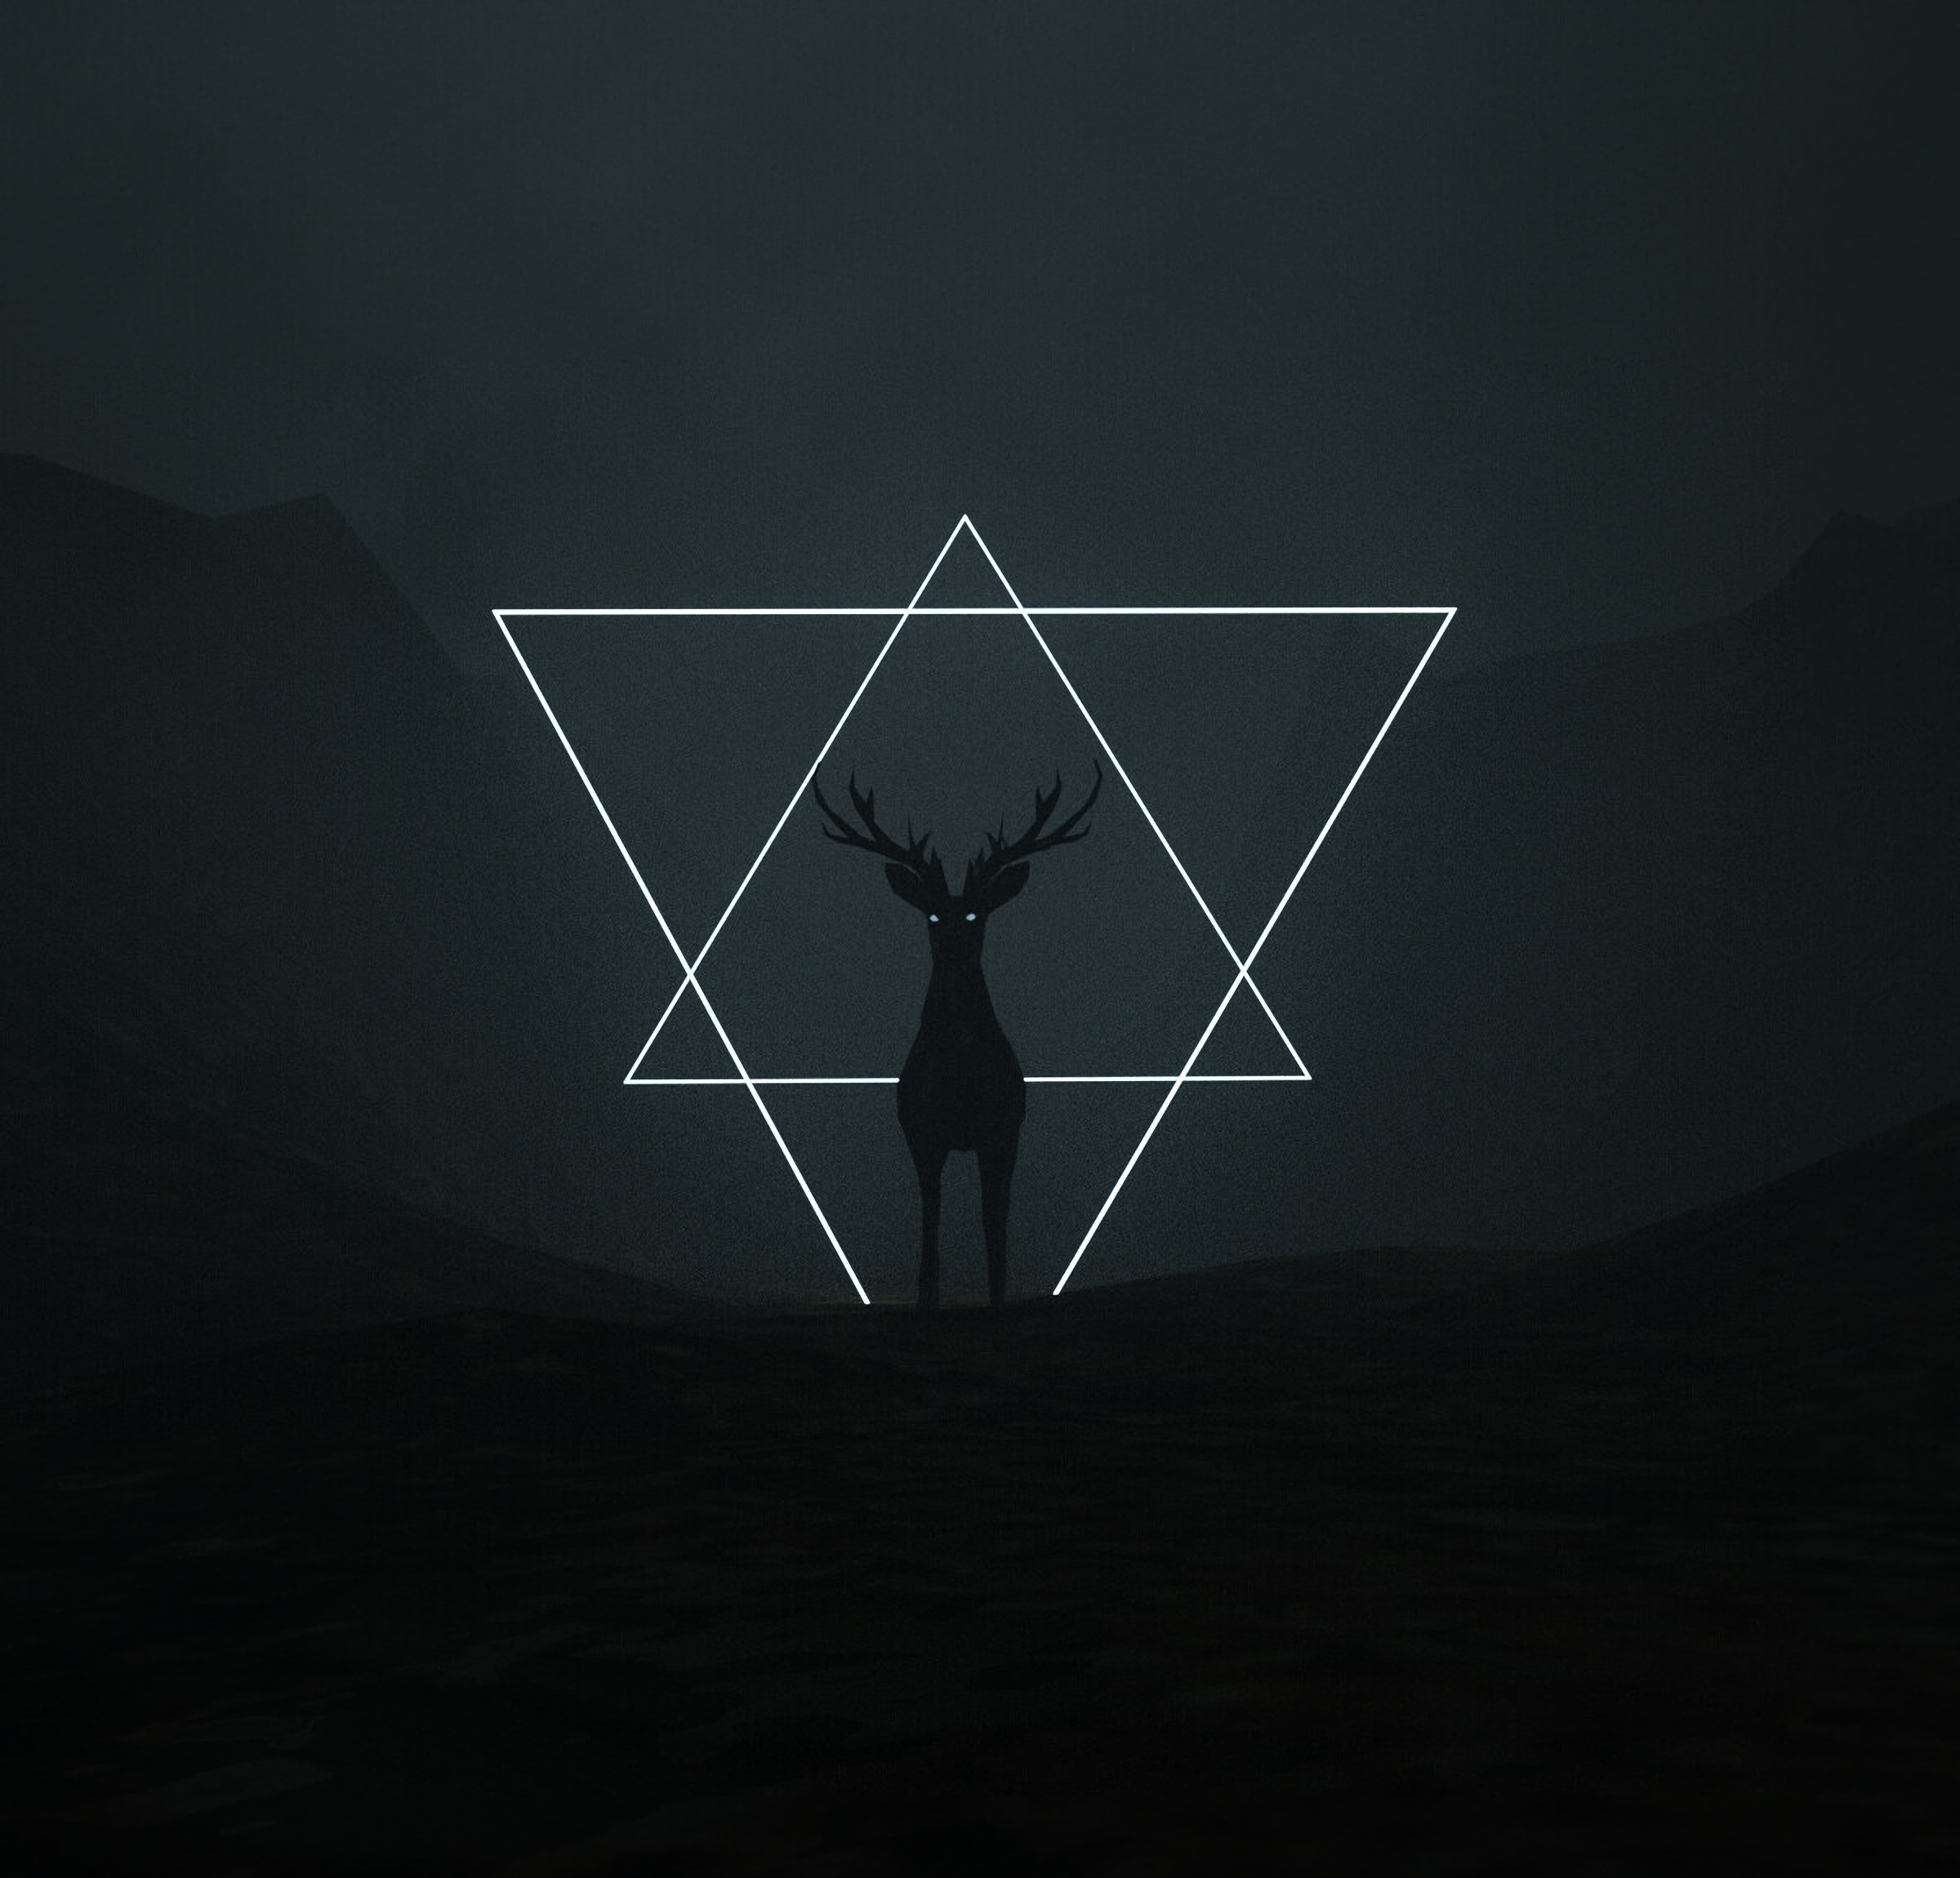 113367 download wallpaper Dark, Deer, Triangles, Art screensavers and pictures for free